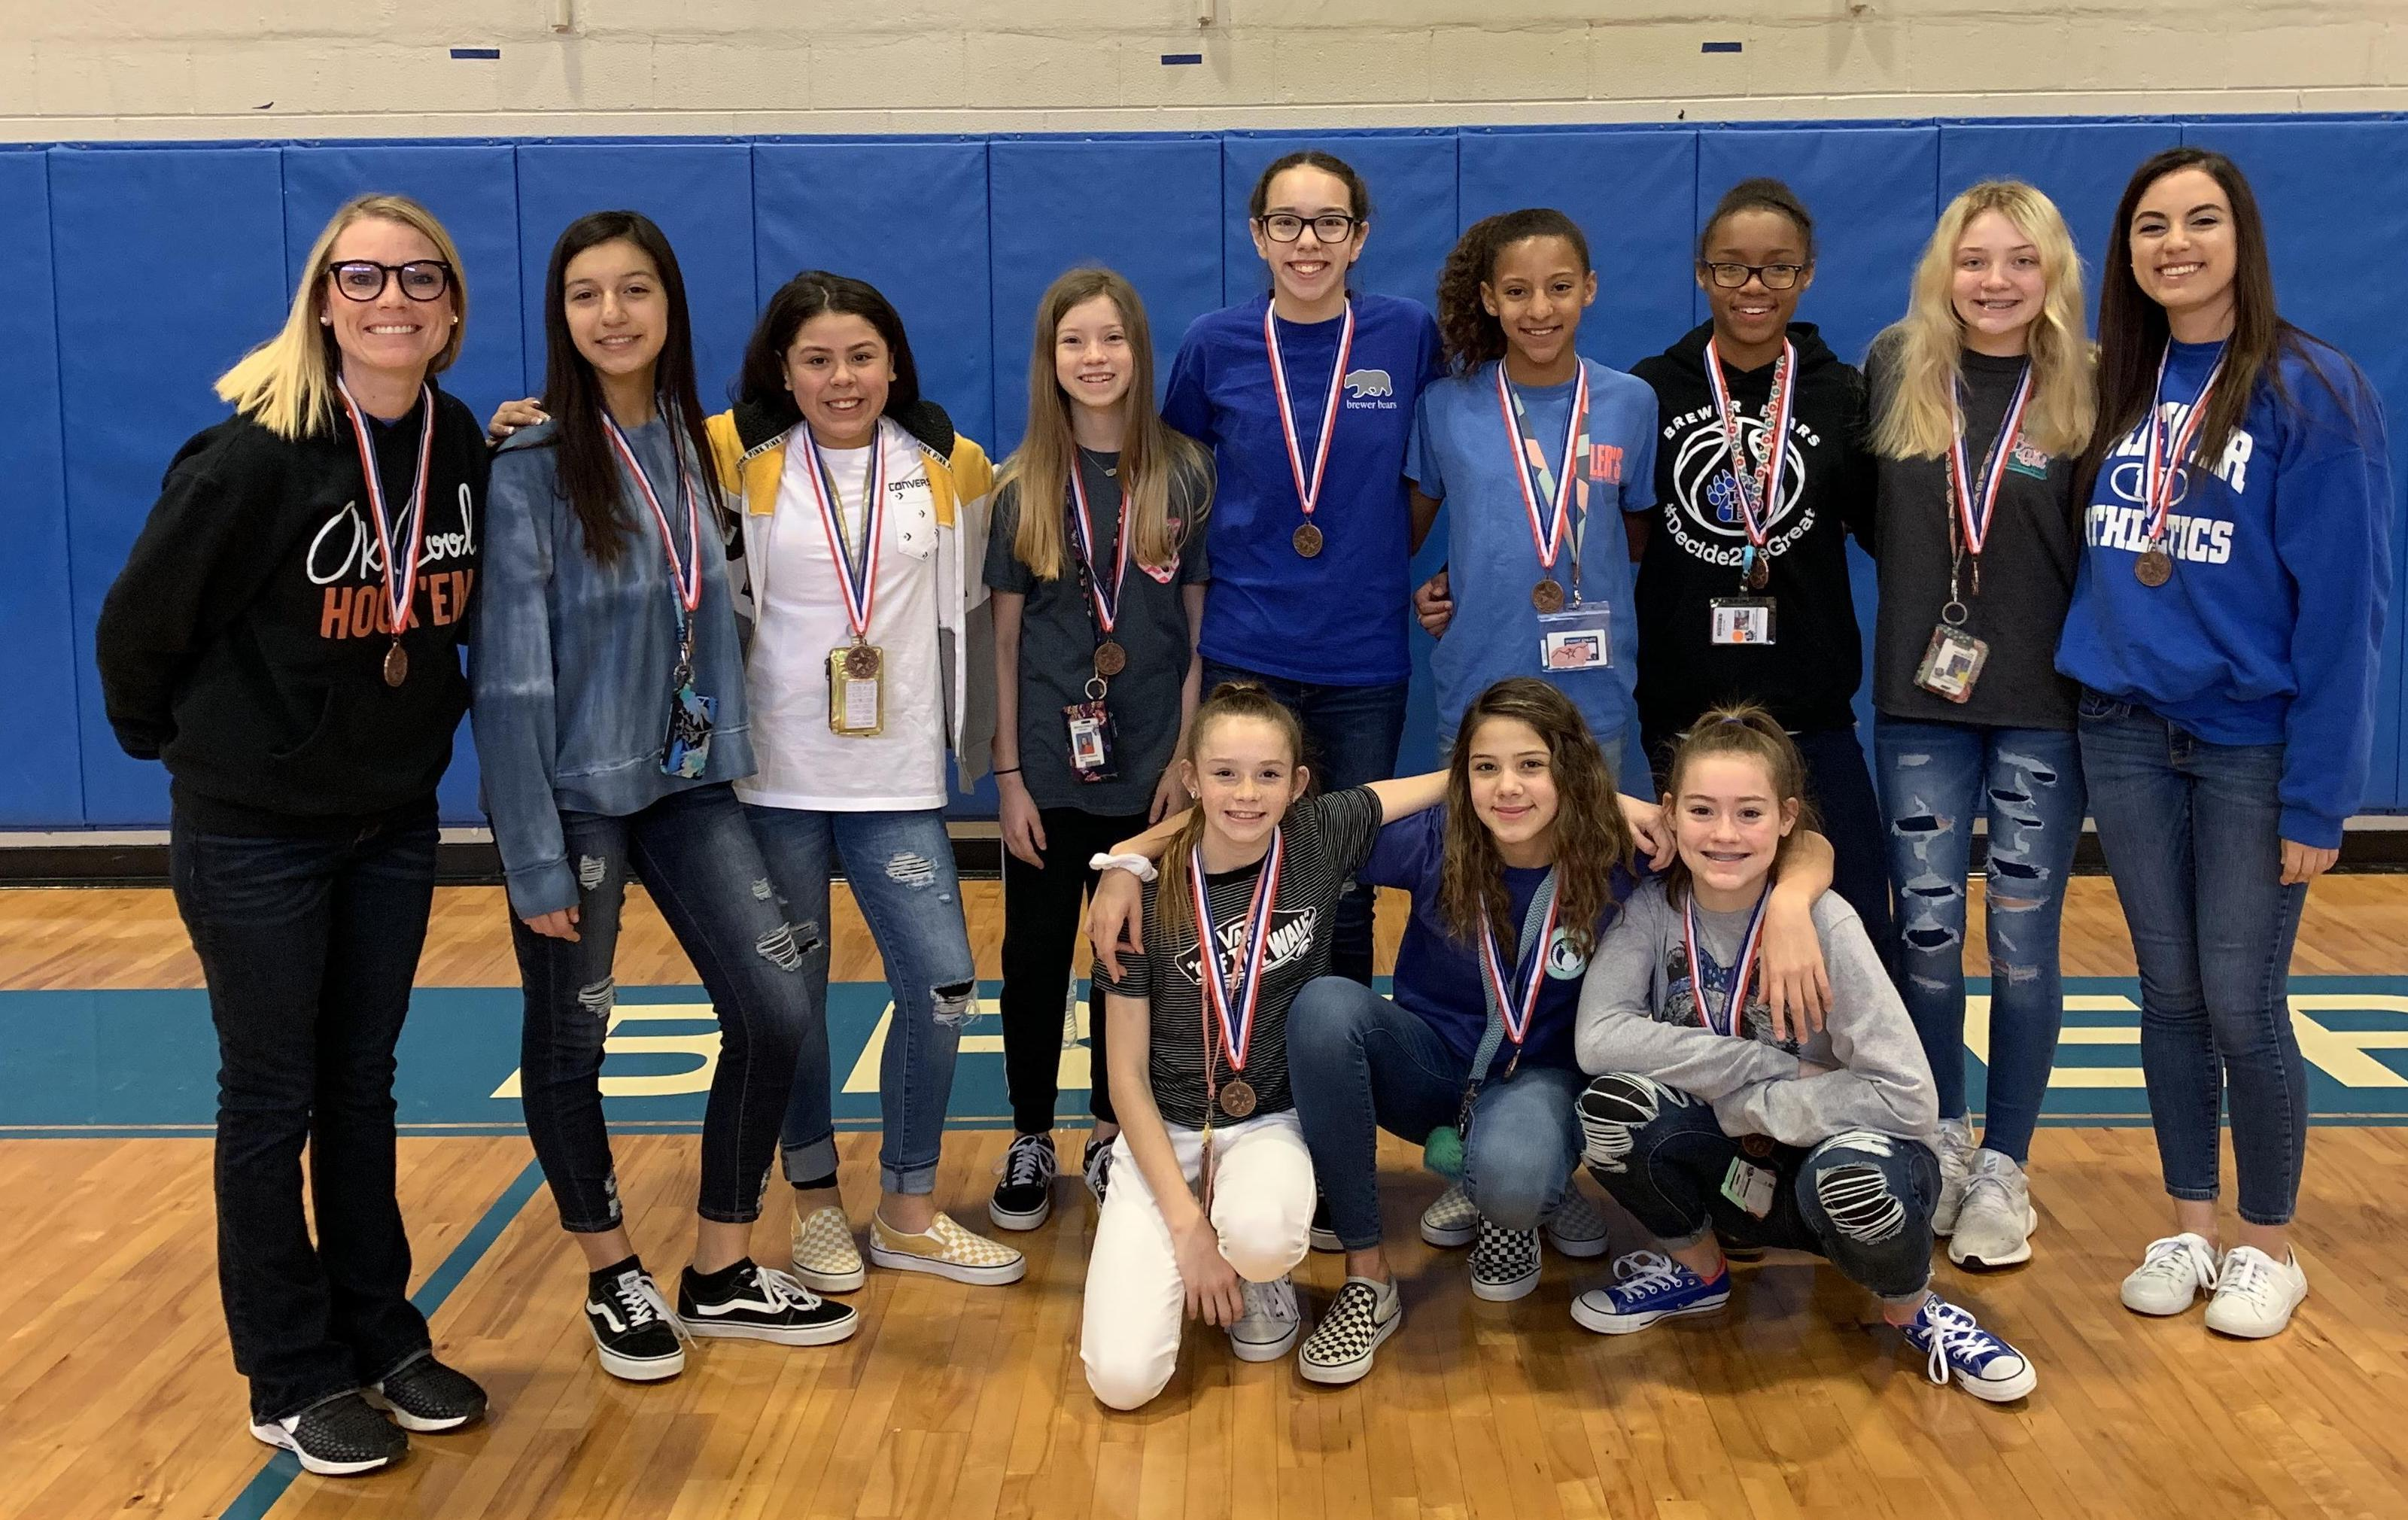 Brewer Middle School's seventh grade A team finished third in district.